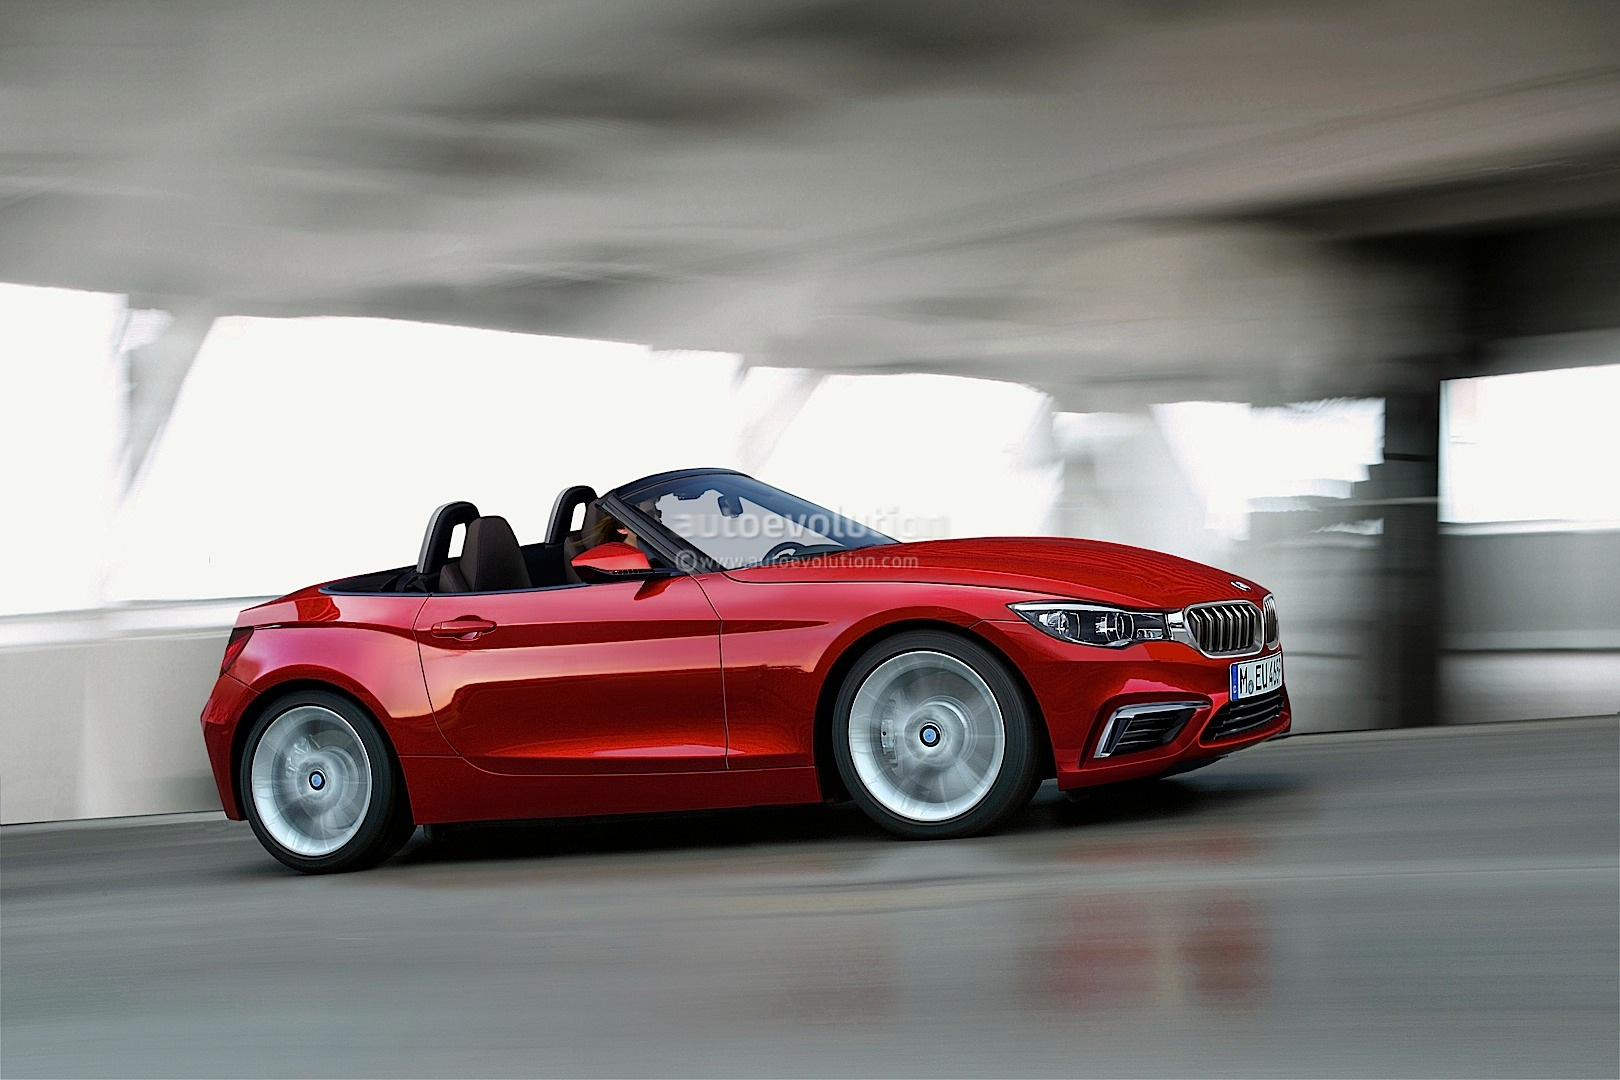 New Rendering: BMW Z2 - autoevolution